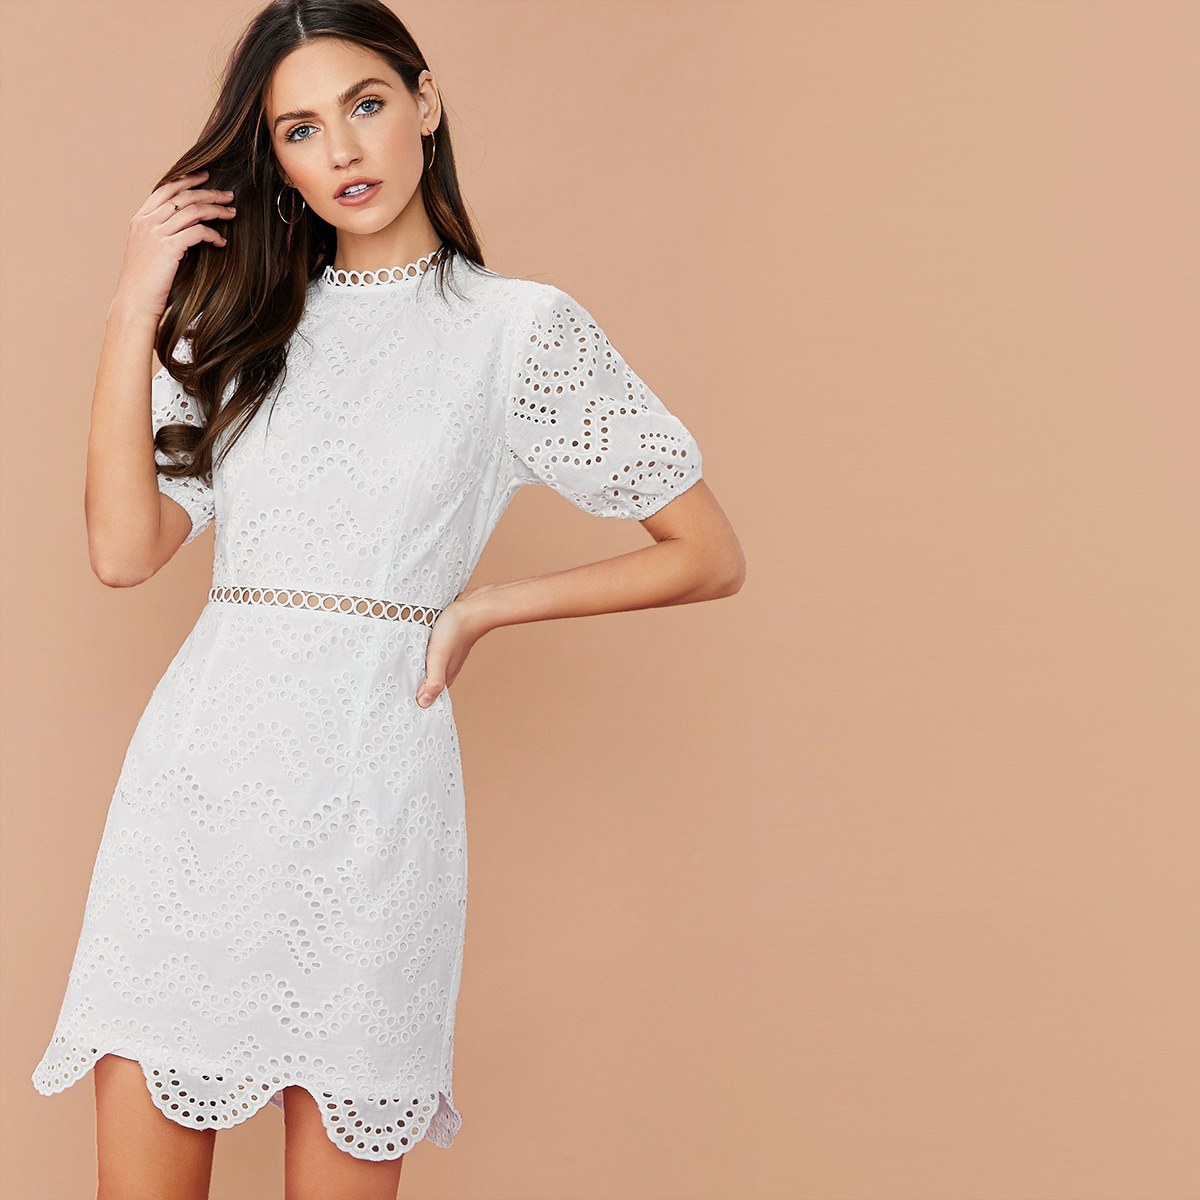 SHEIN / Guipure Lace Insert Scallop Hem Eyelet Embroidery Dress